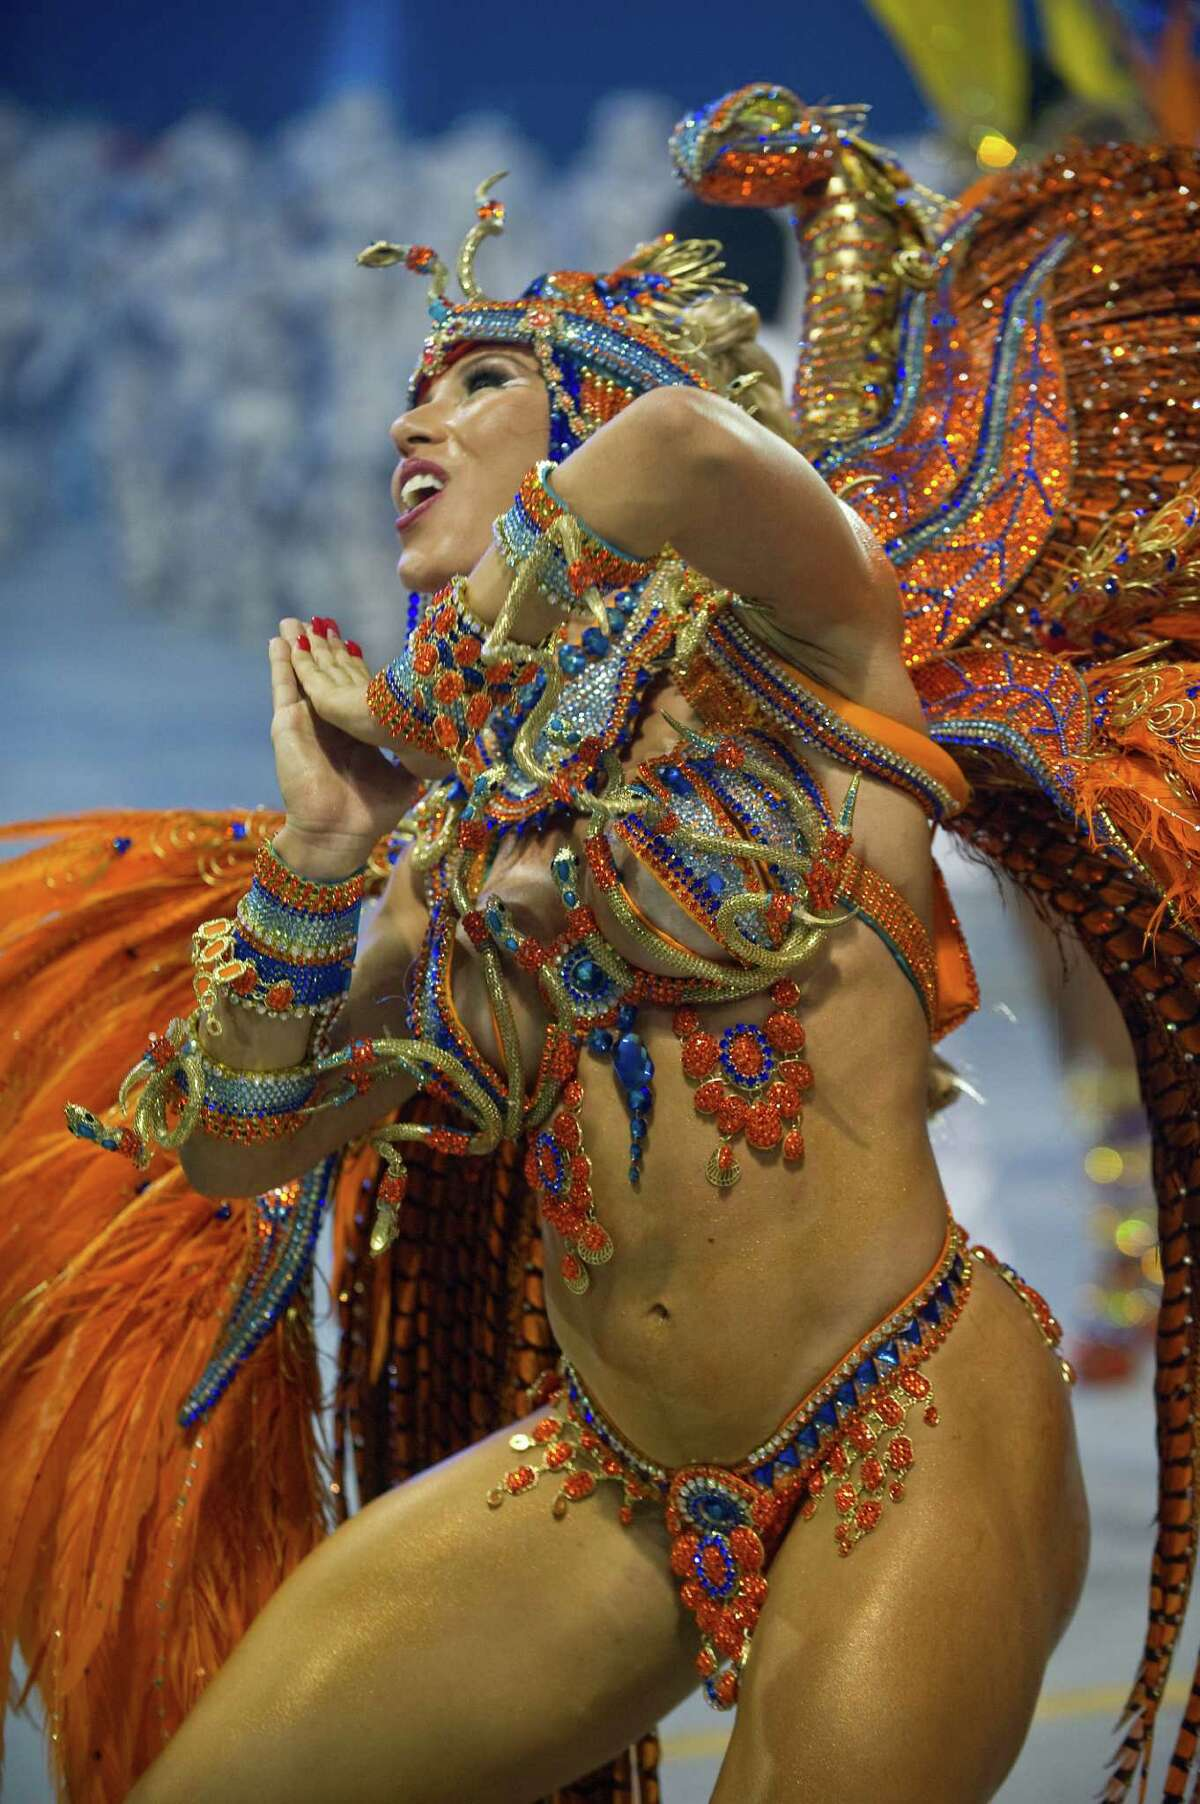 A reveler of Imperio de Casa Verde samba school performs during the second night of Carnival parades at the Sambadrome in Sao Paulo on Sunday.